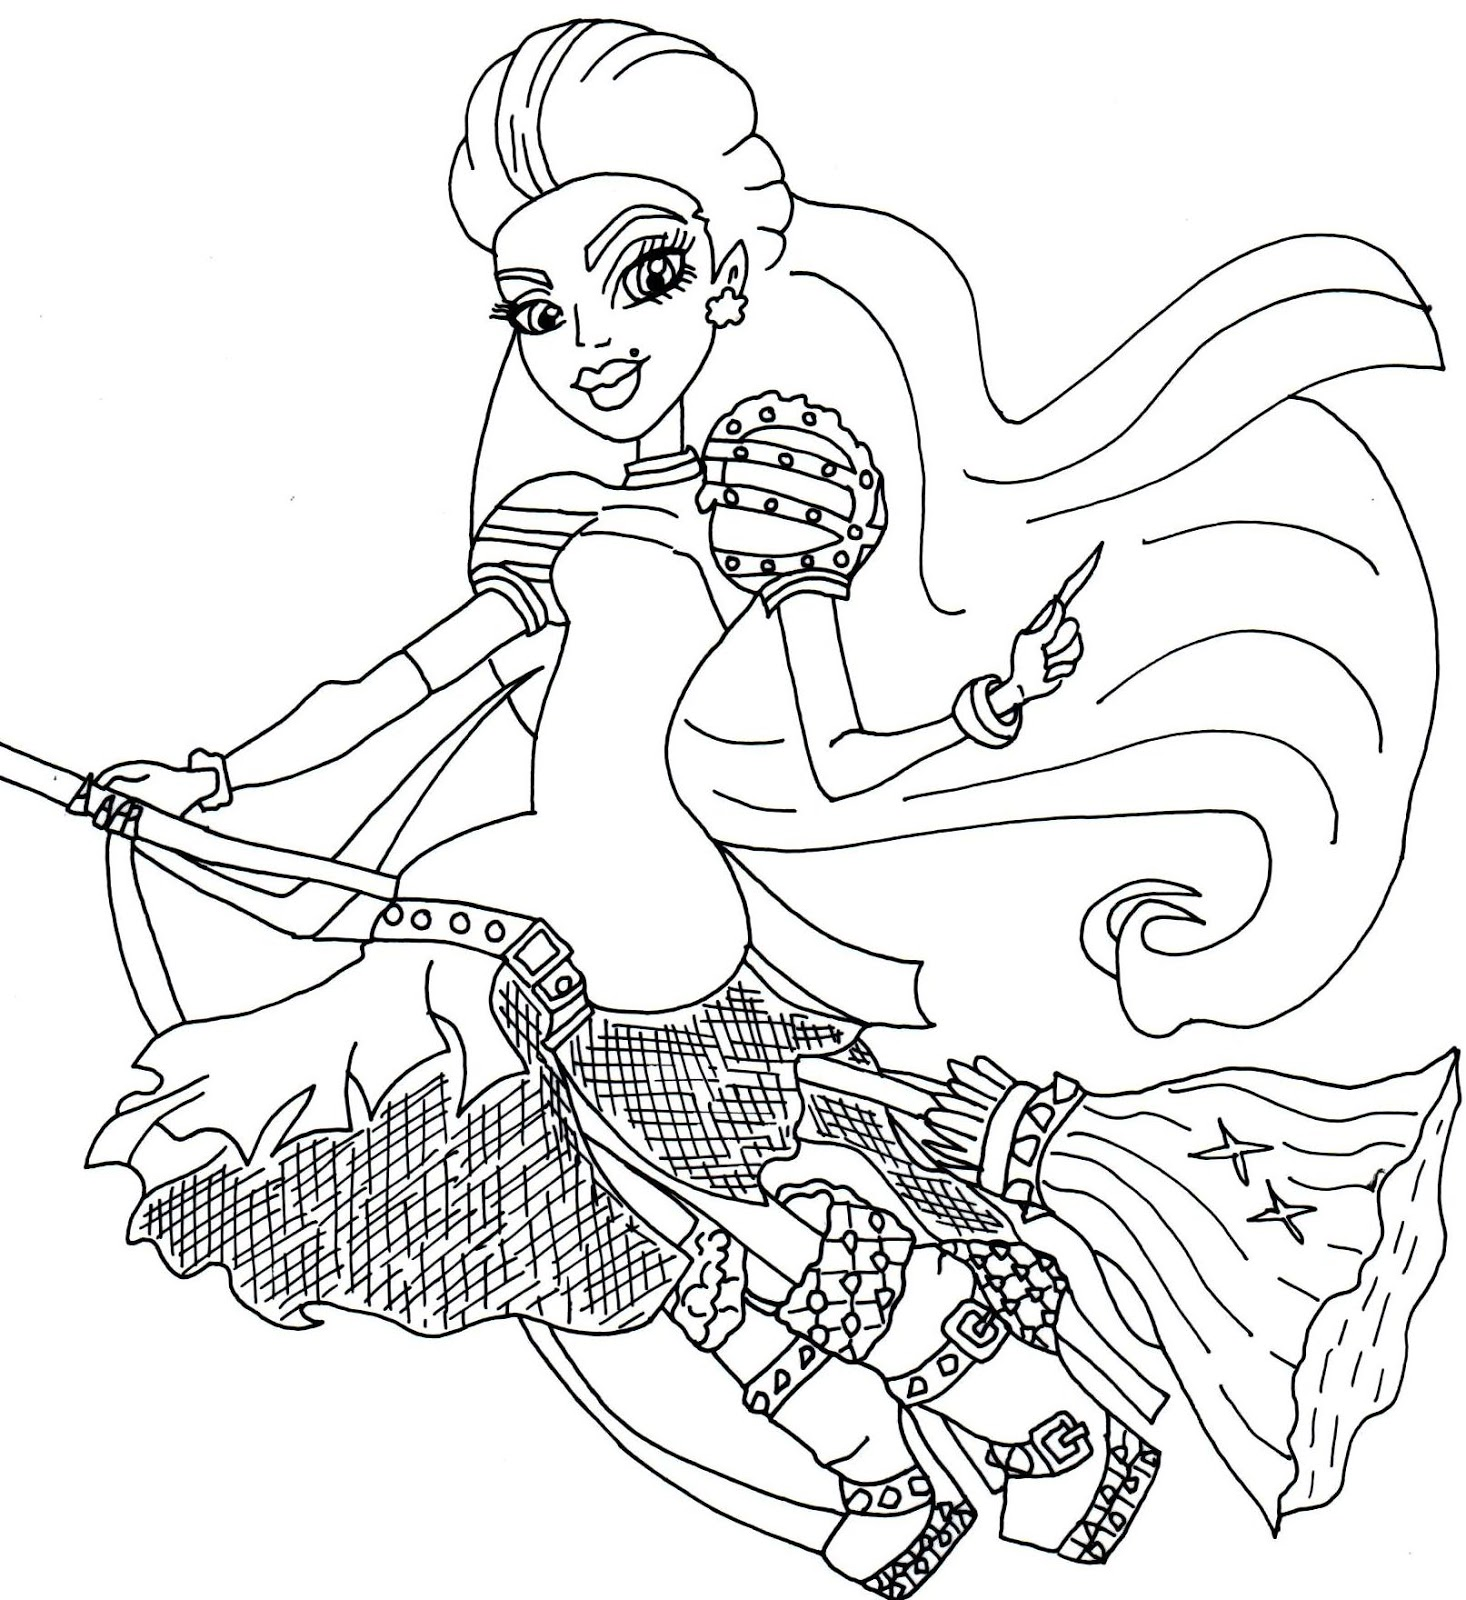 Free Printable Monster High Coloring Pages: Moanica D'Kay Monster ... | 1600x1466